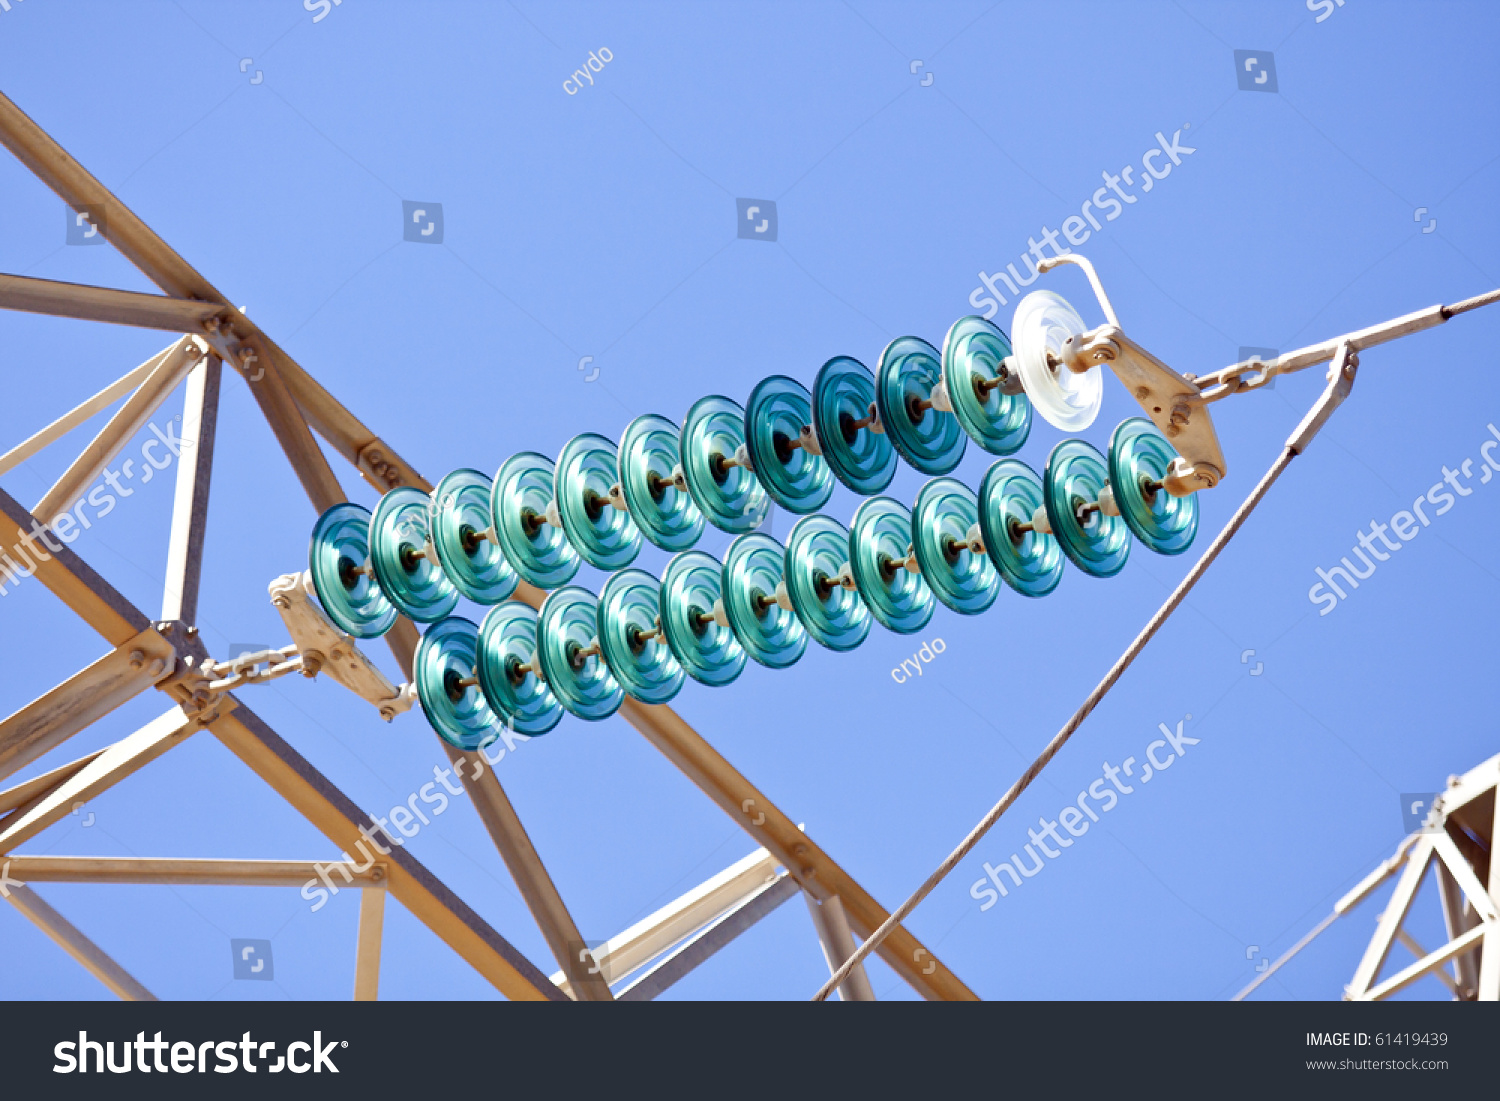 High Voltage Insulator Failures : High voltage electrical insulator electric line against